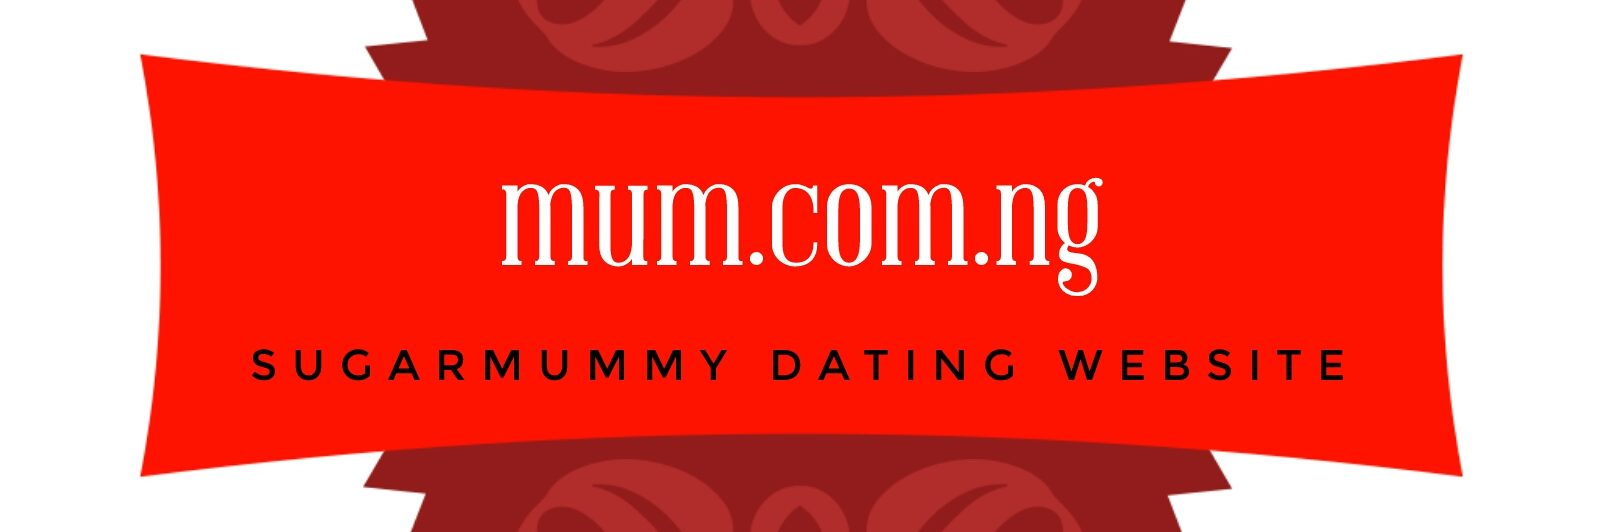 Sugar Mummy Contact